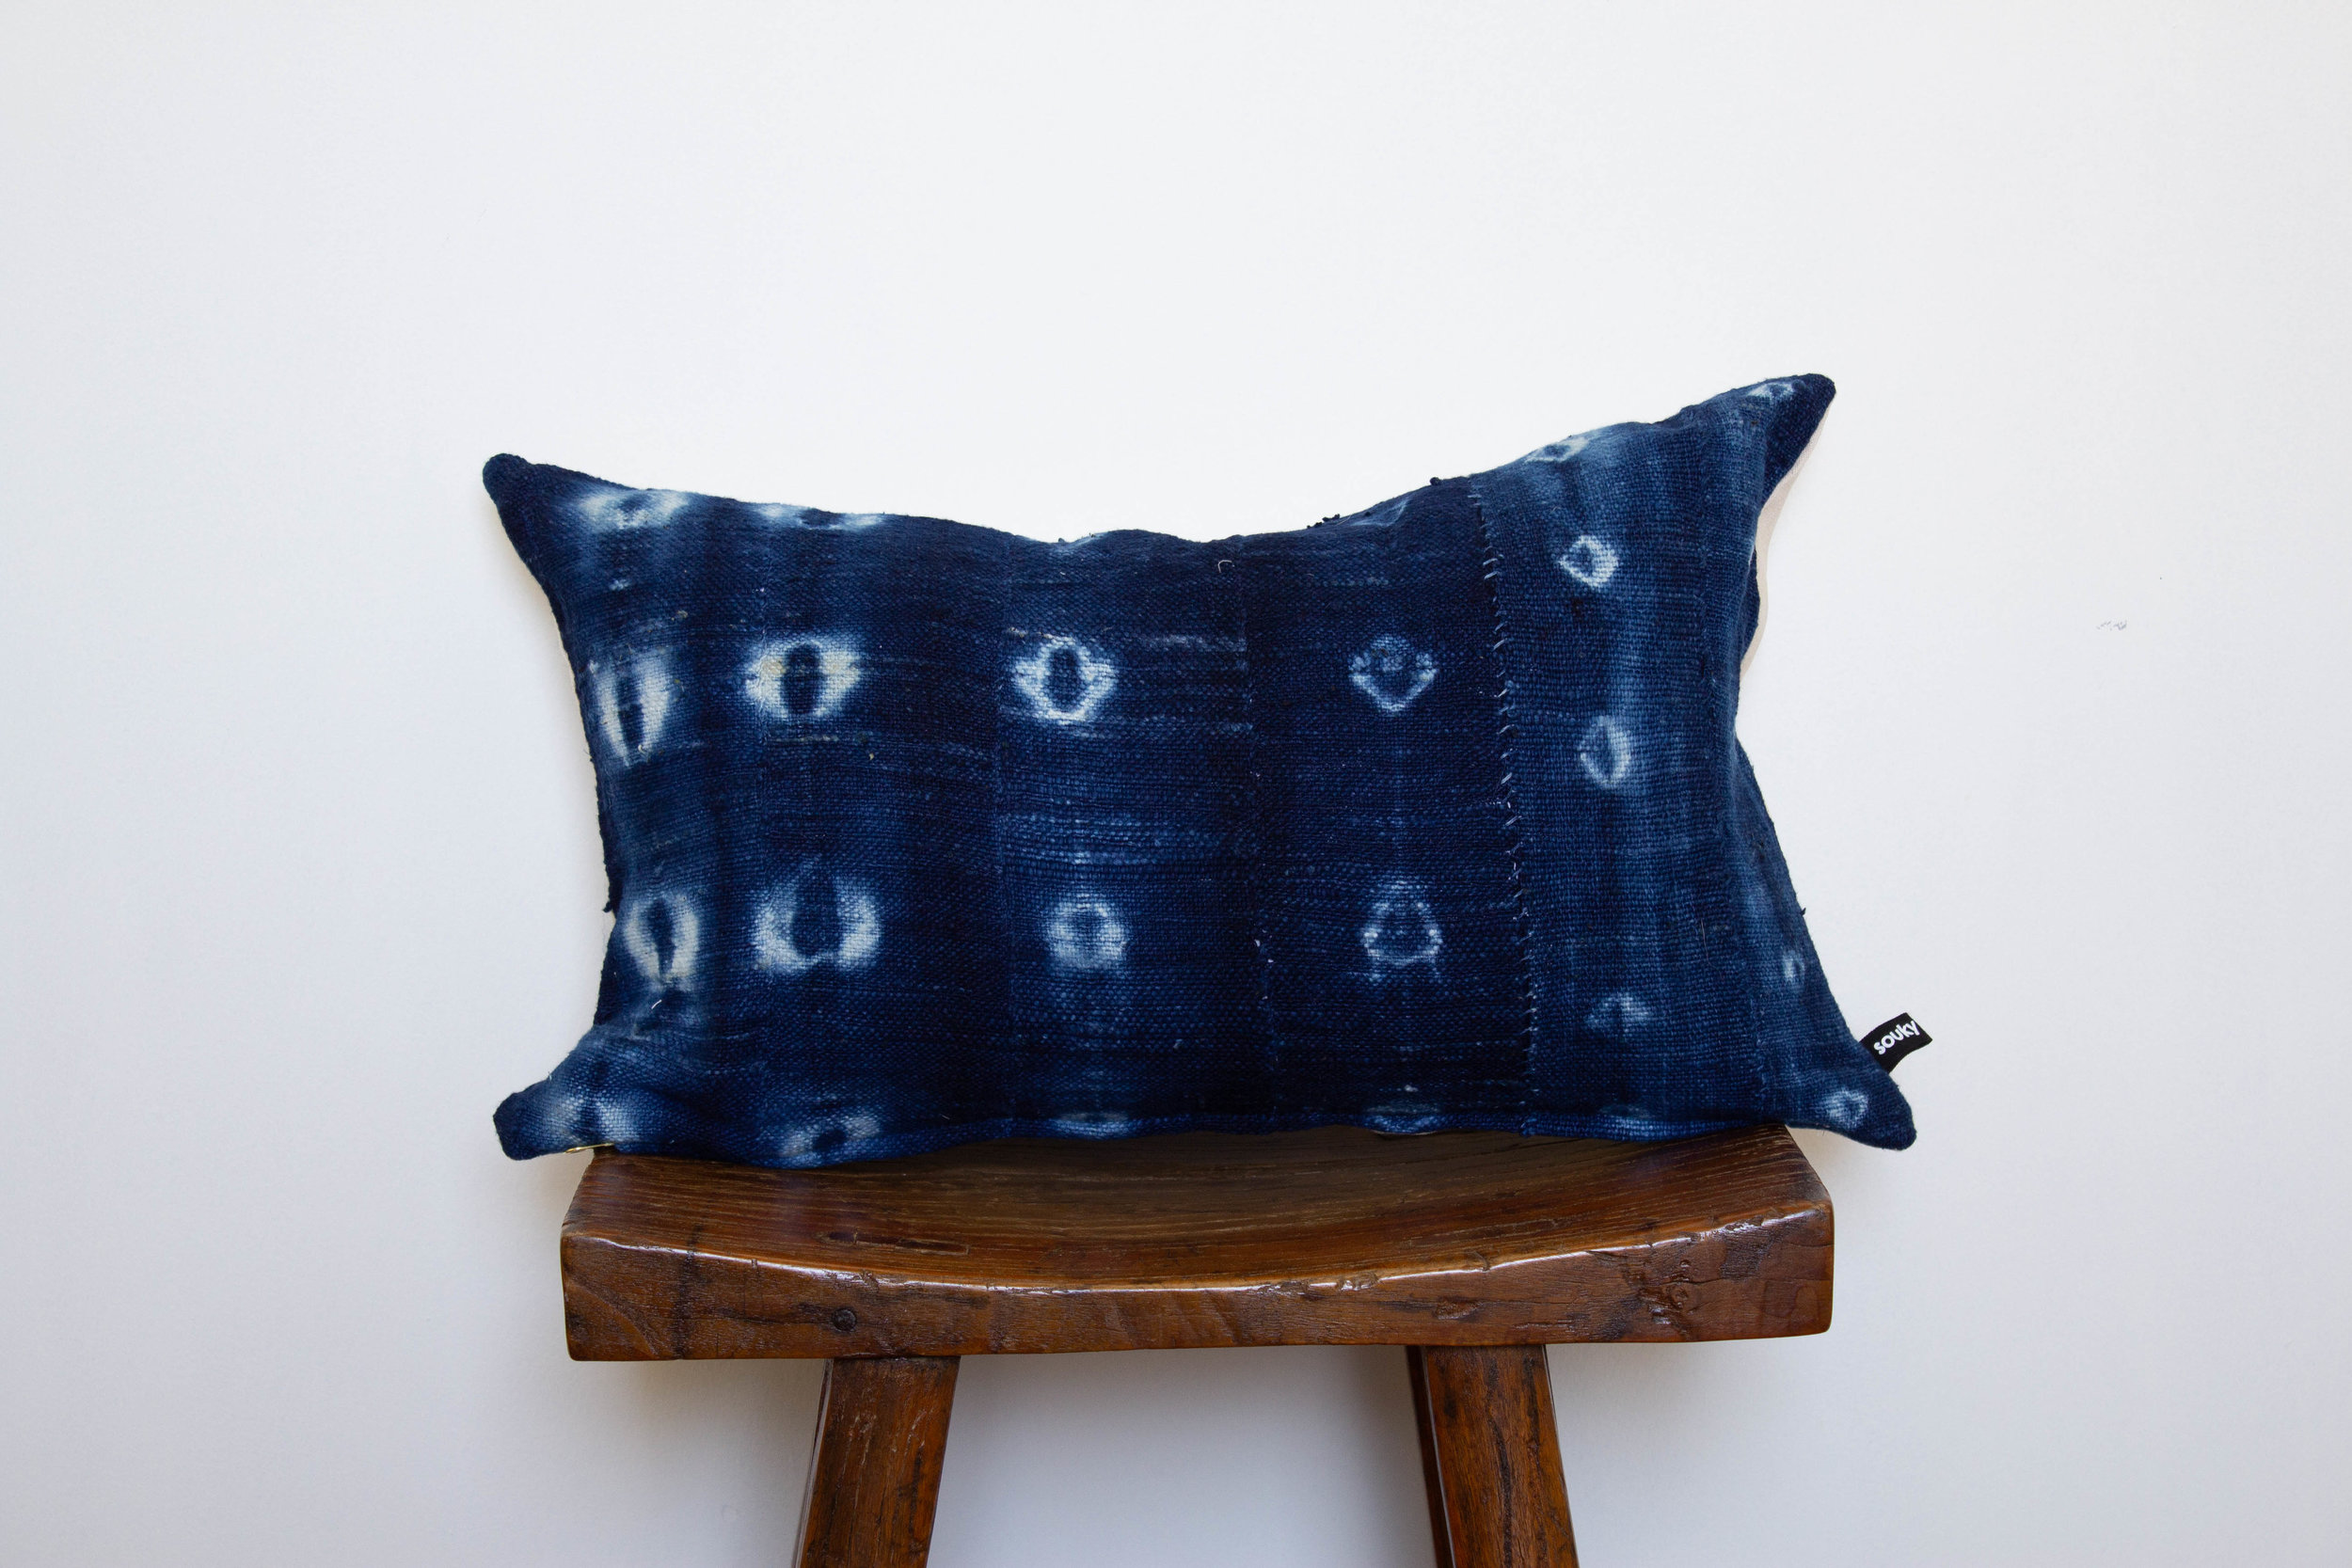 Sabine- 2 available    350 RMB  Pillow cover is made from dyed indigo, African mud-cloth sourced from Ghana  Size: Roughly 52x32 cm  Pillow back is made from a neutral cotton/linen blend  Zipper on bottom of pillow  Down insert included  Hand wash or spot clean recommended